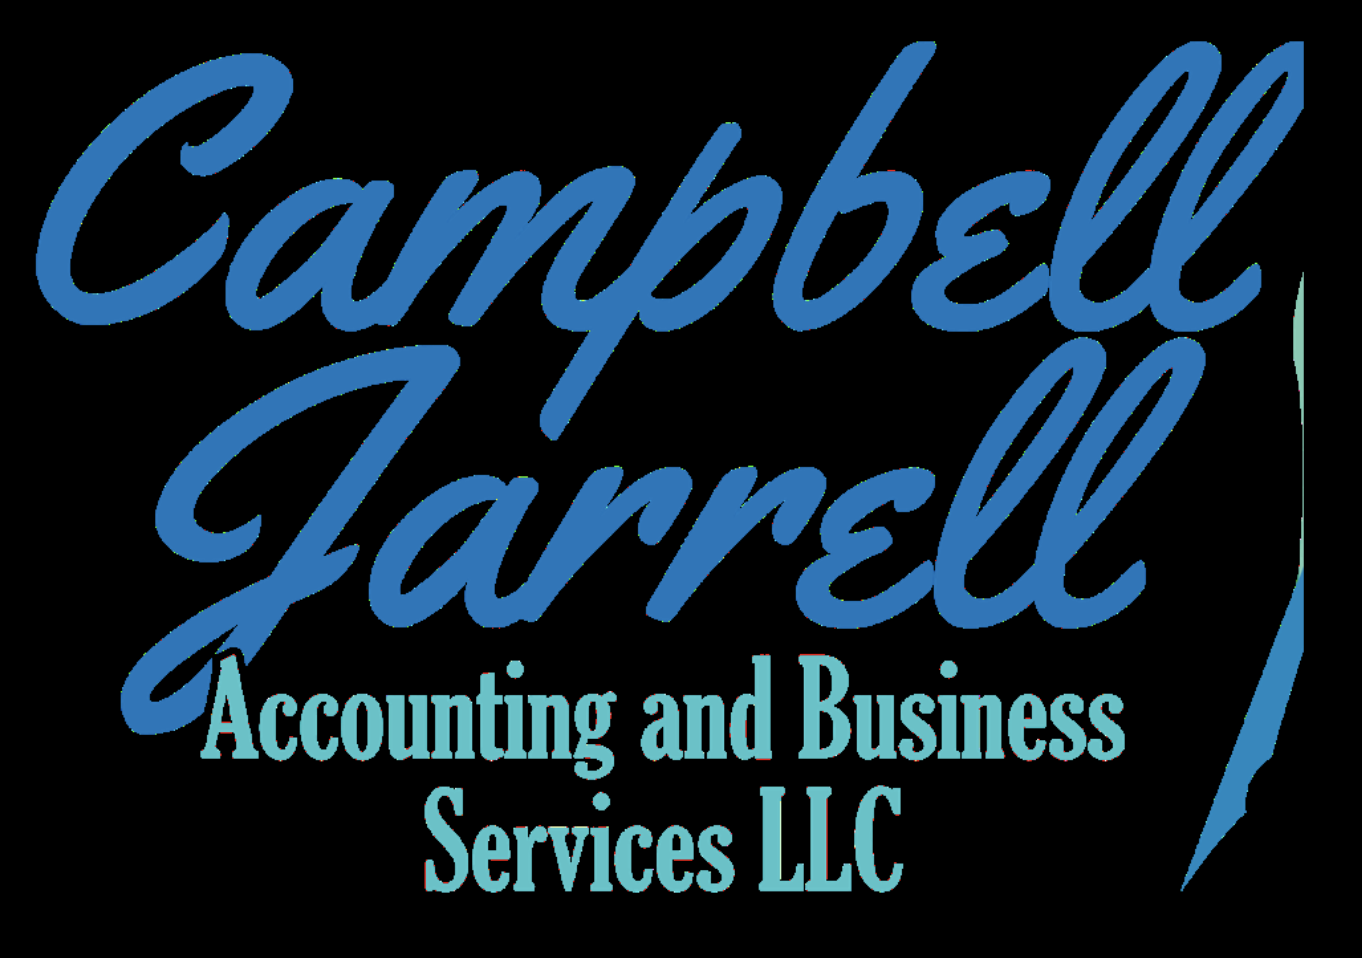 Campbell Jarrell Accounting